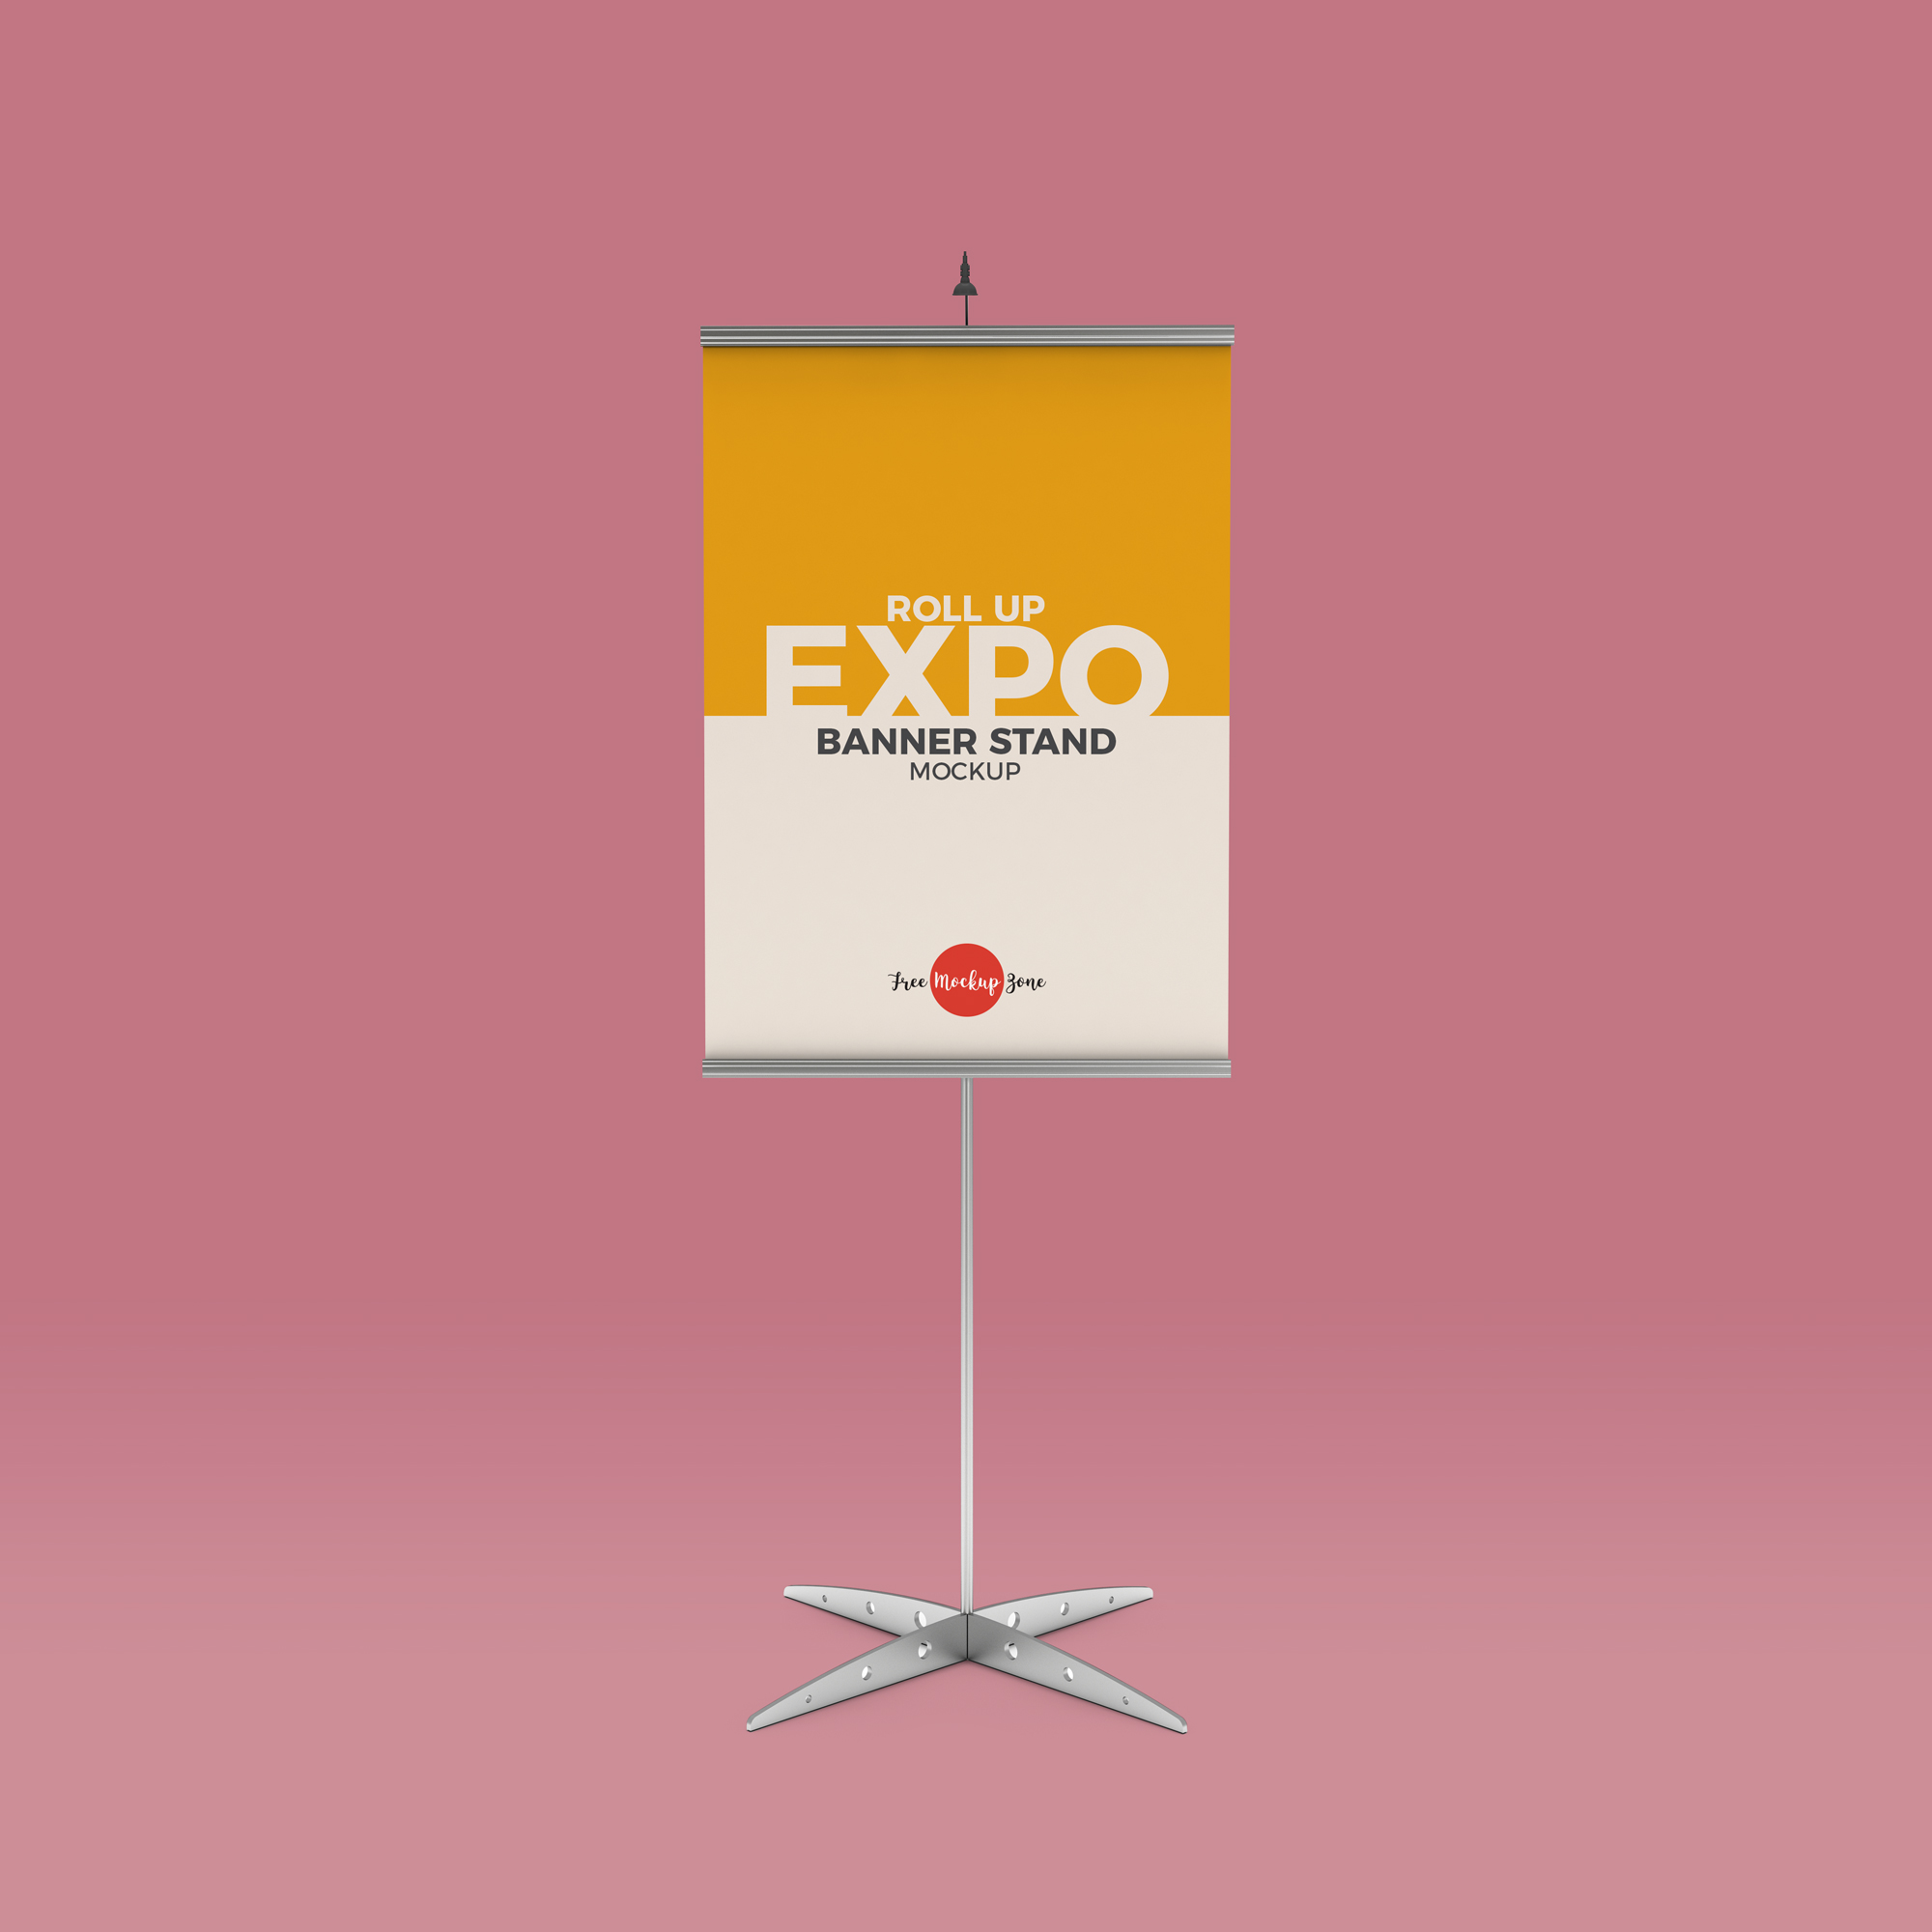 Free-Roll-Up-Expo-Banner-Stand-Mockup